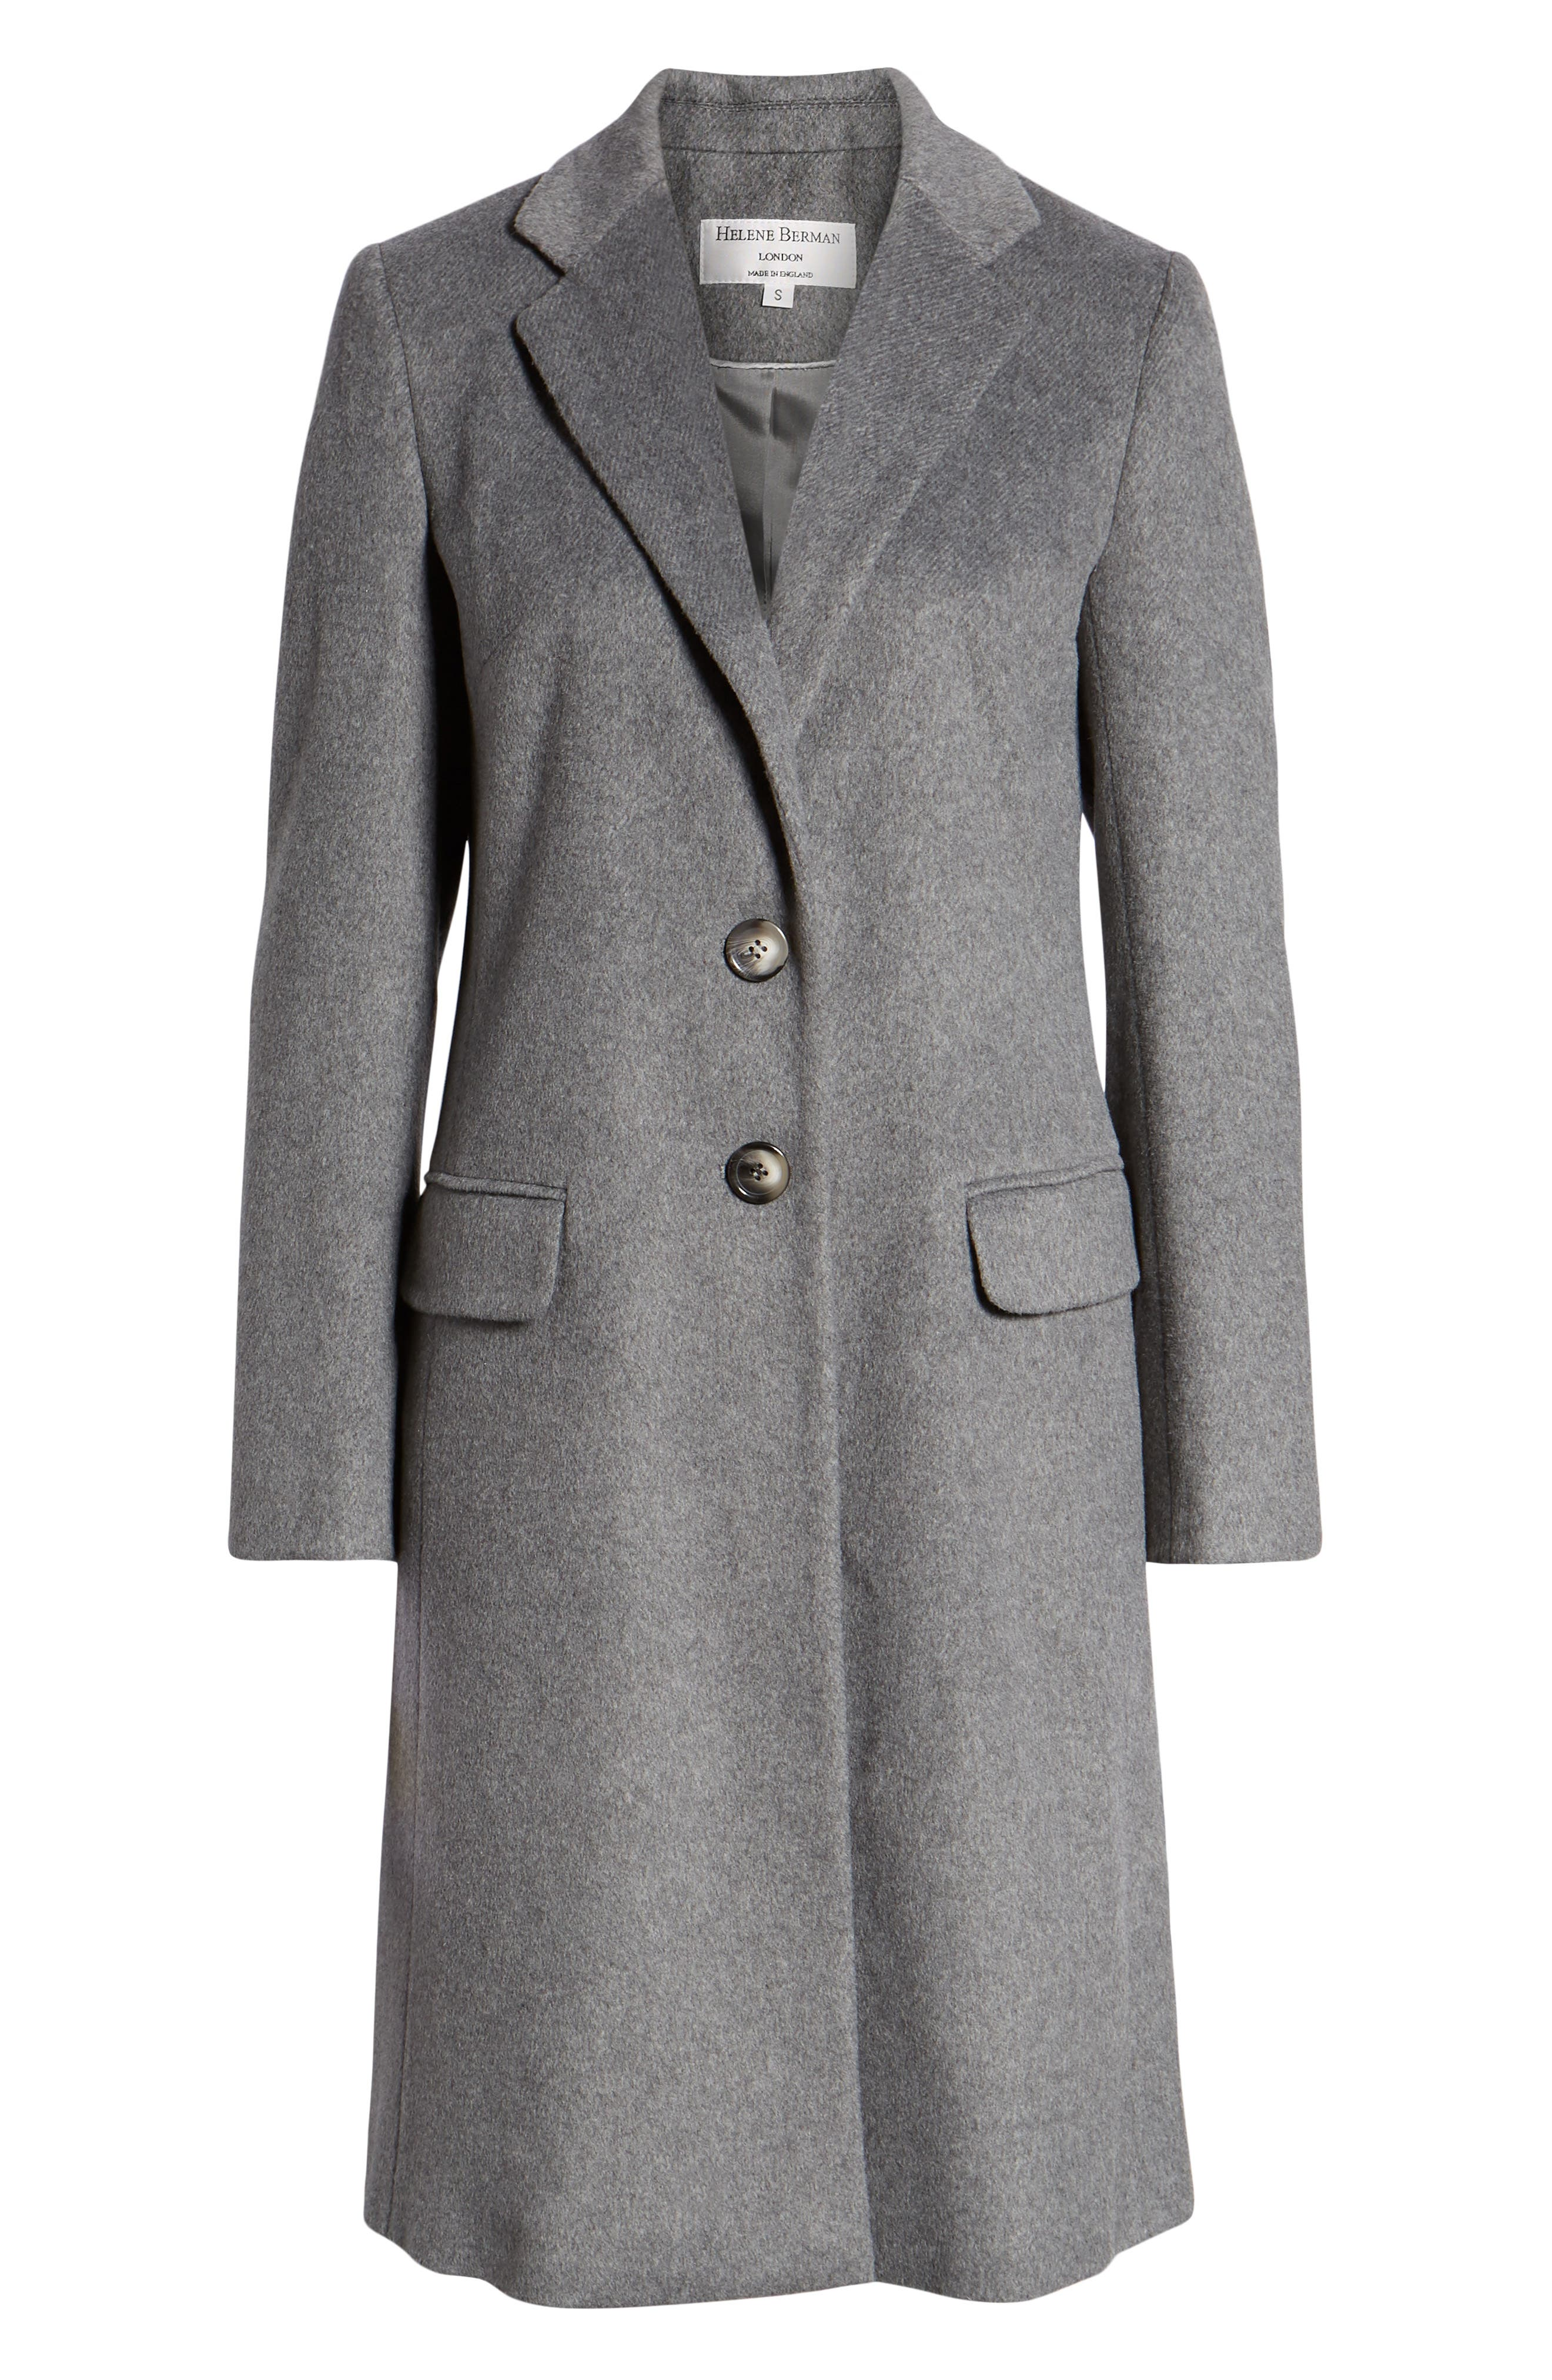 Charles Gray London College Coat,                             Alternate thumbnail 6, color,                             020